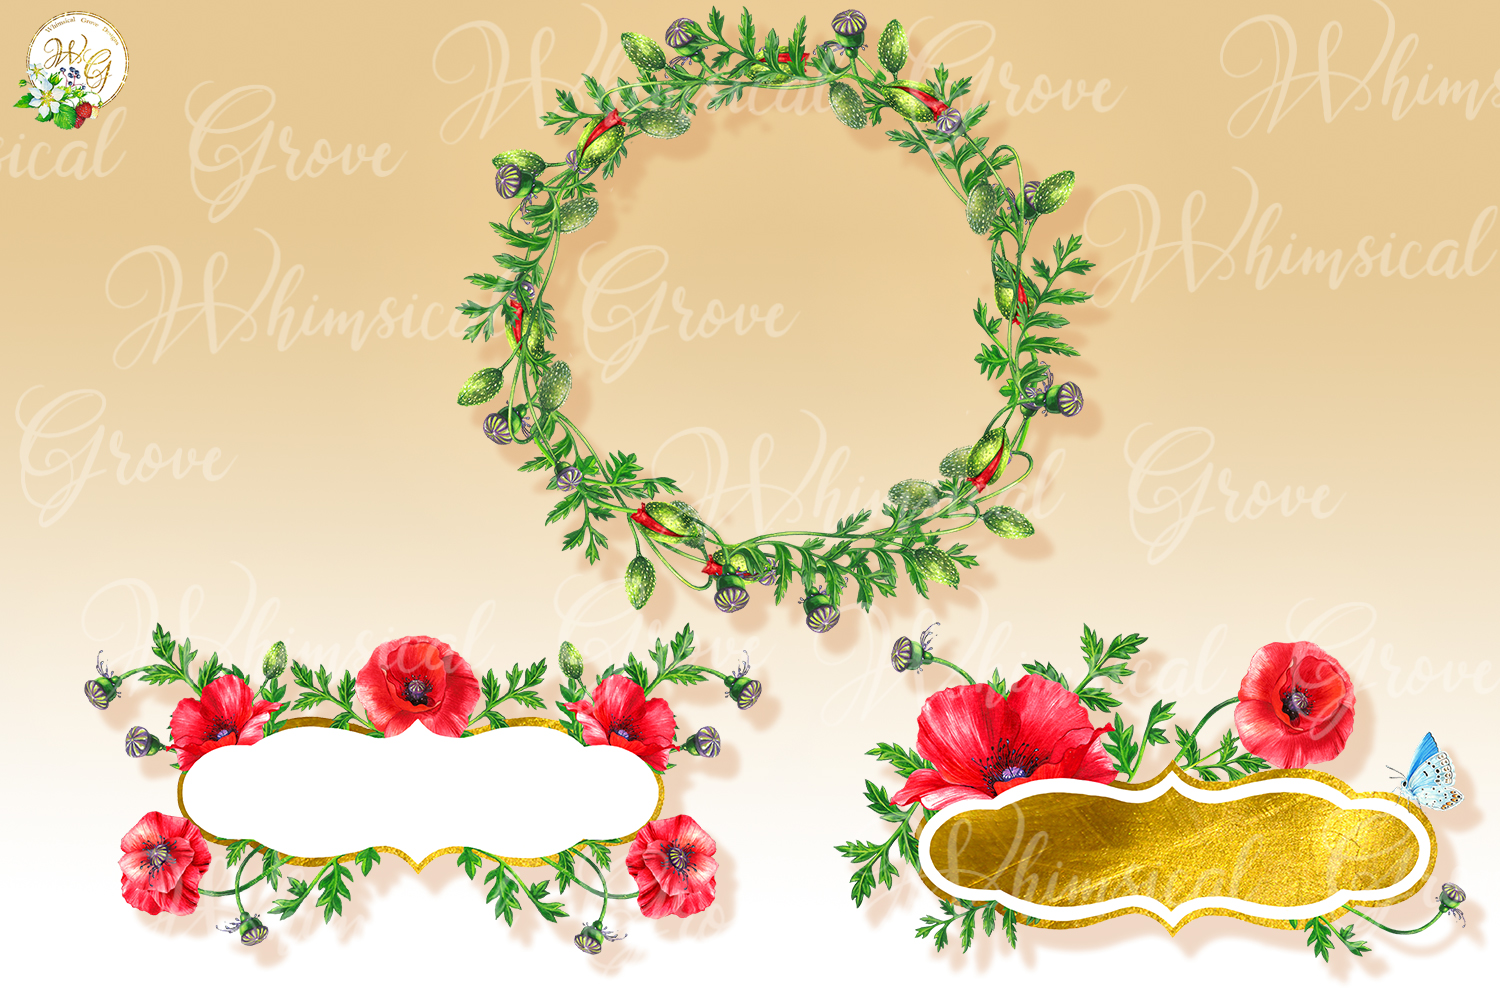 Scarlet Poppy set 18 watercolor handpainted clipart, floral, example image 4